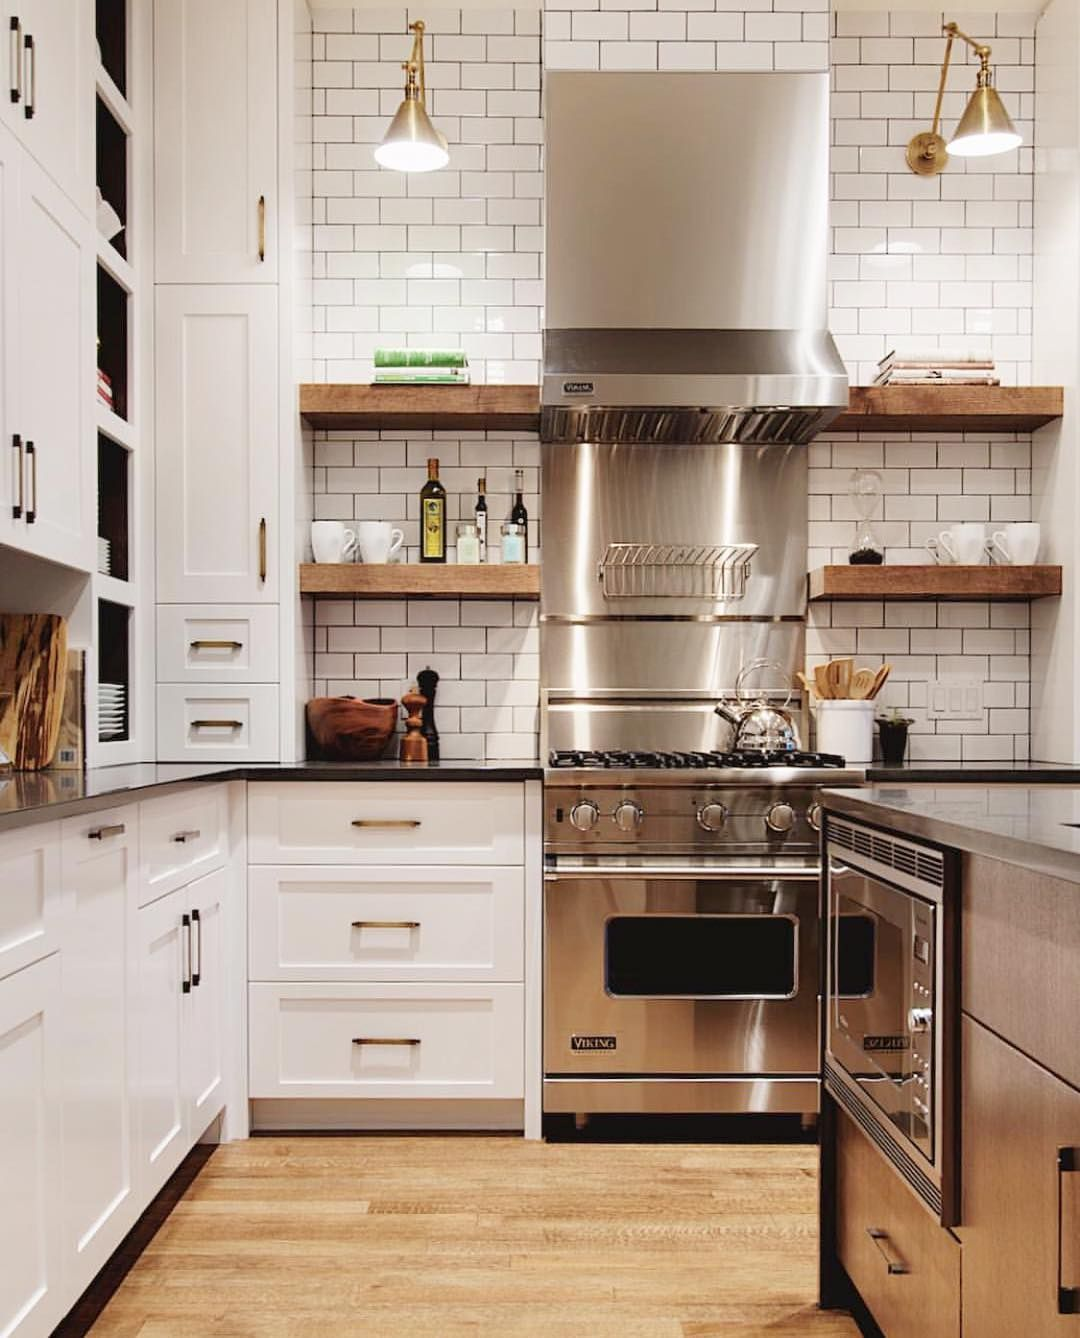 33 Modern Style Cozy Wooden Kitchen Design Ideas: Pin By Little Yellow Cottage On ***Cozy Cottage Kitchens